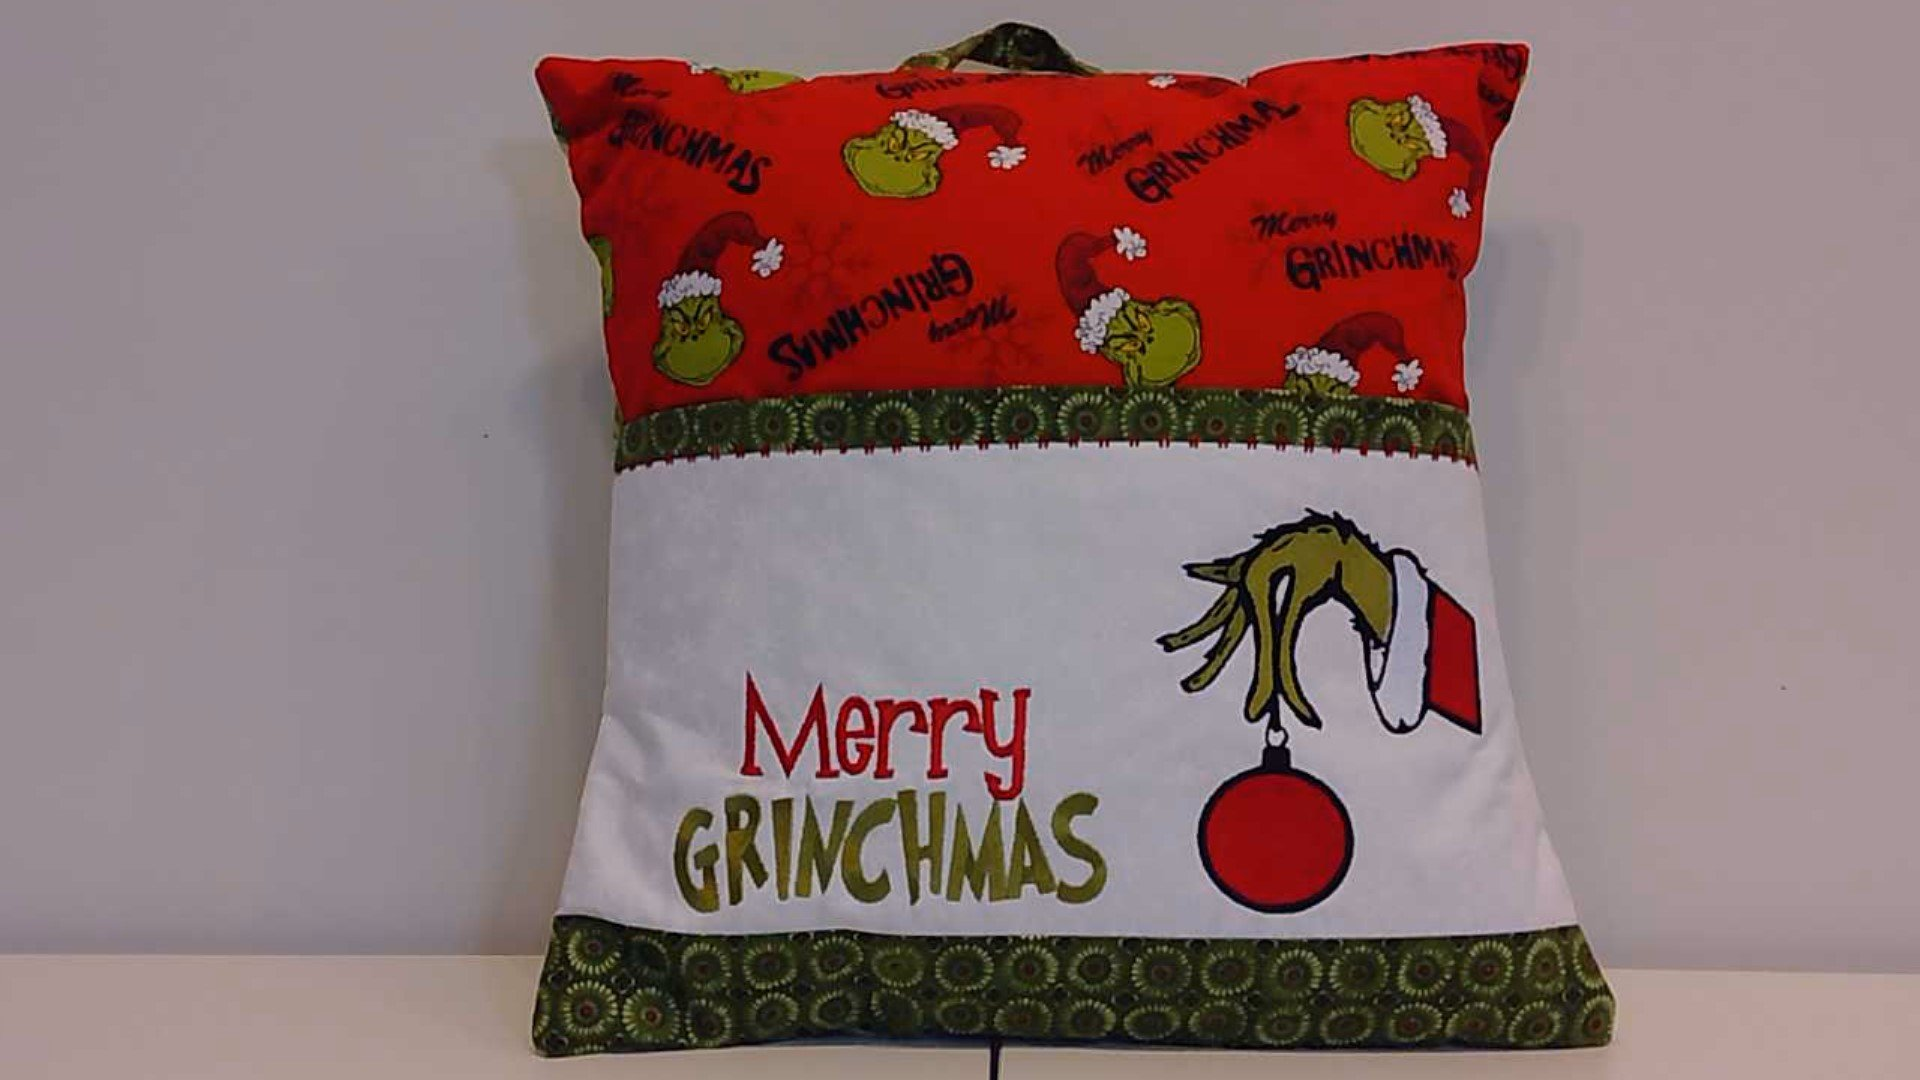 Grinch Merry Christmas